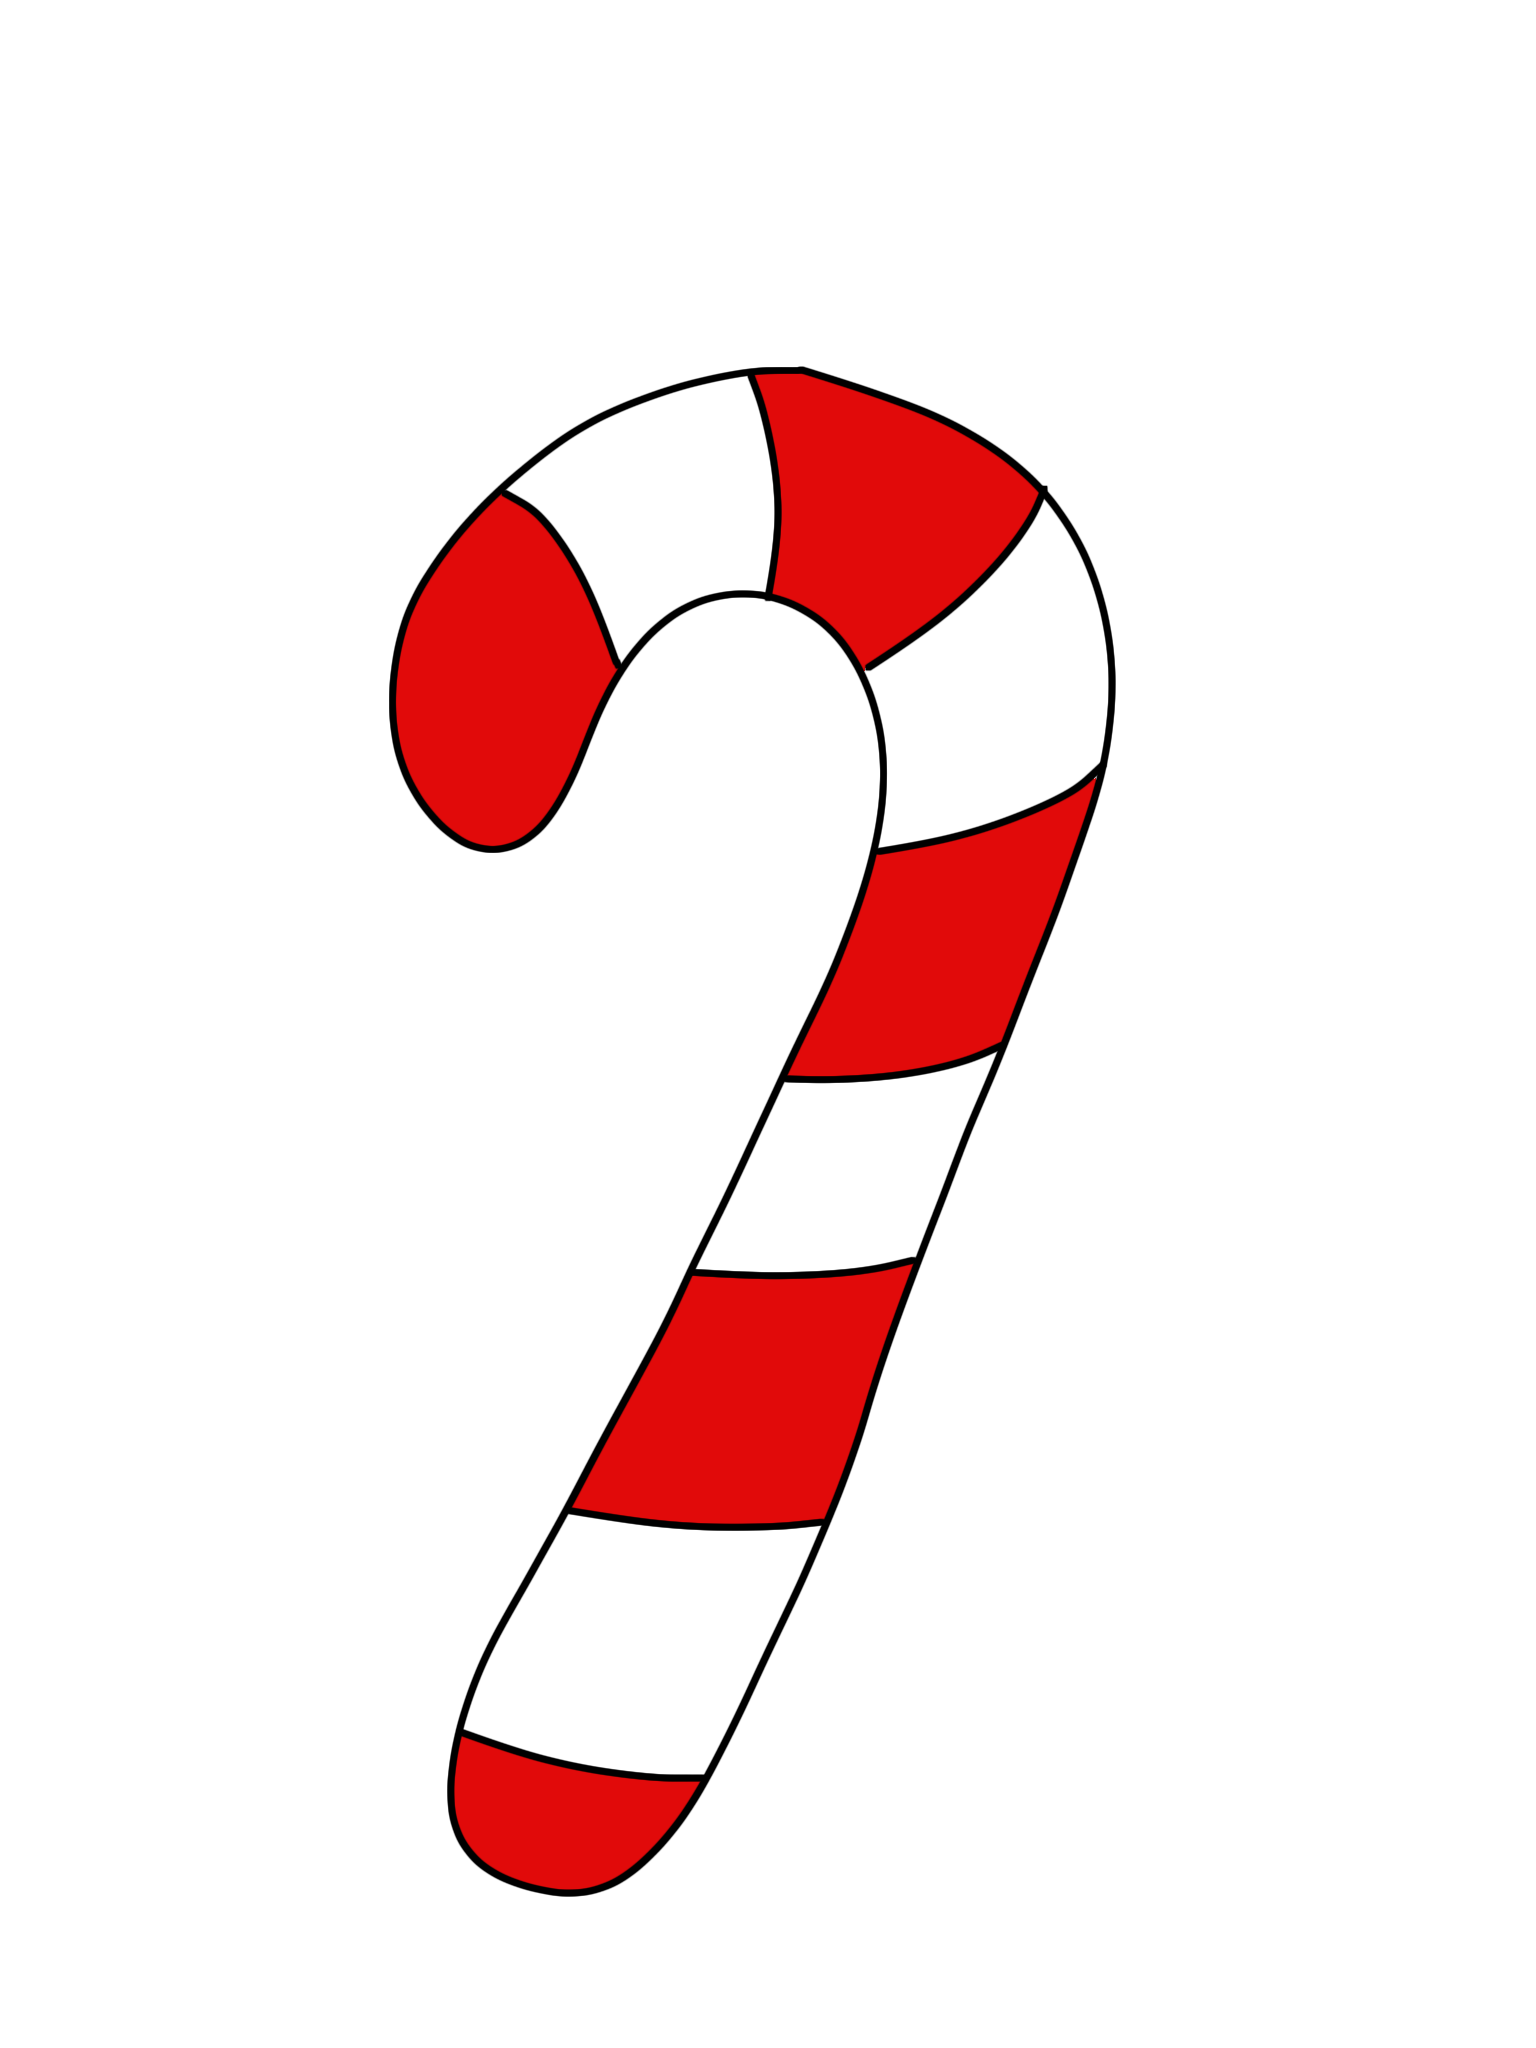 Candy Cane Clip Art Clipart Free Clipart-Candy cane clip art clipart free clipart microsoft clipart image 2-1